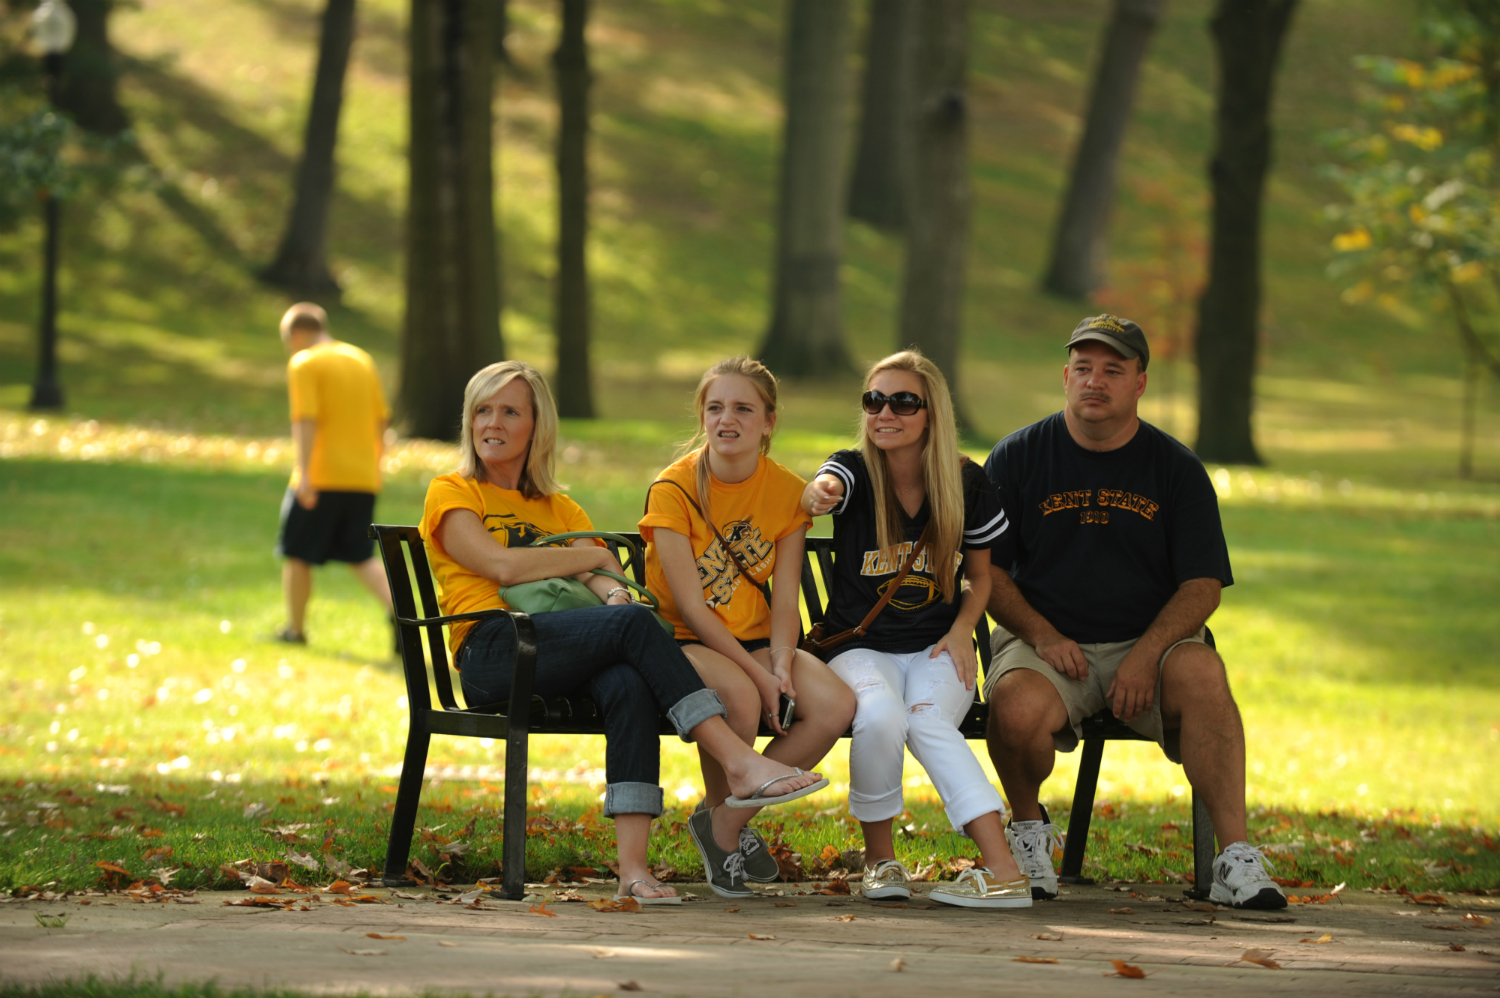 Students and their parents visit the KSU campus.